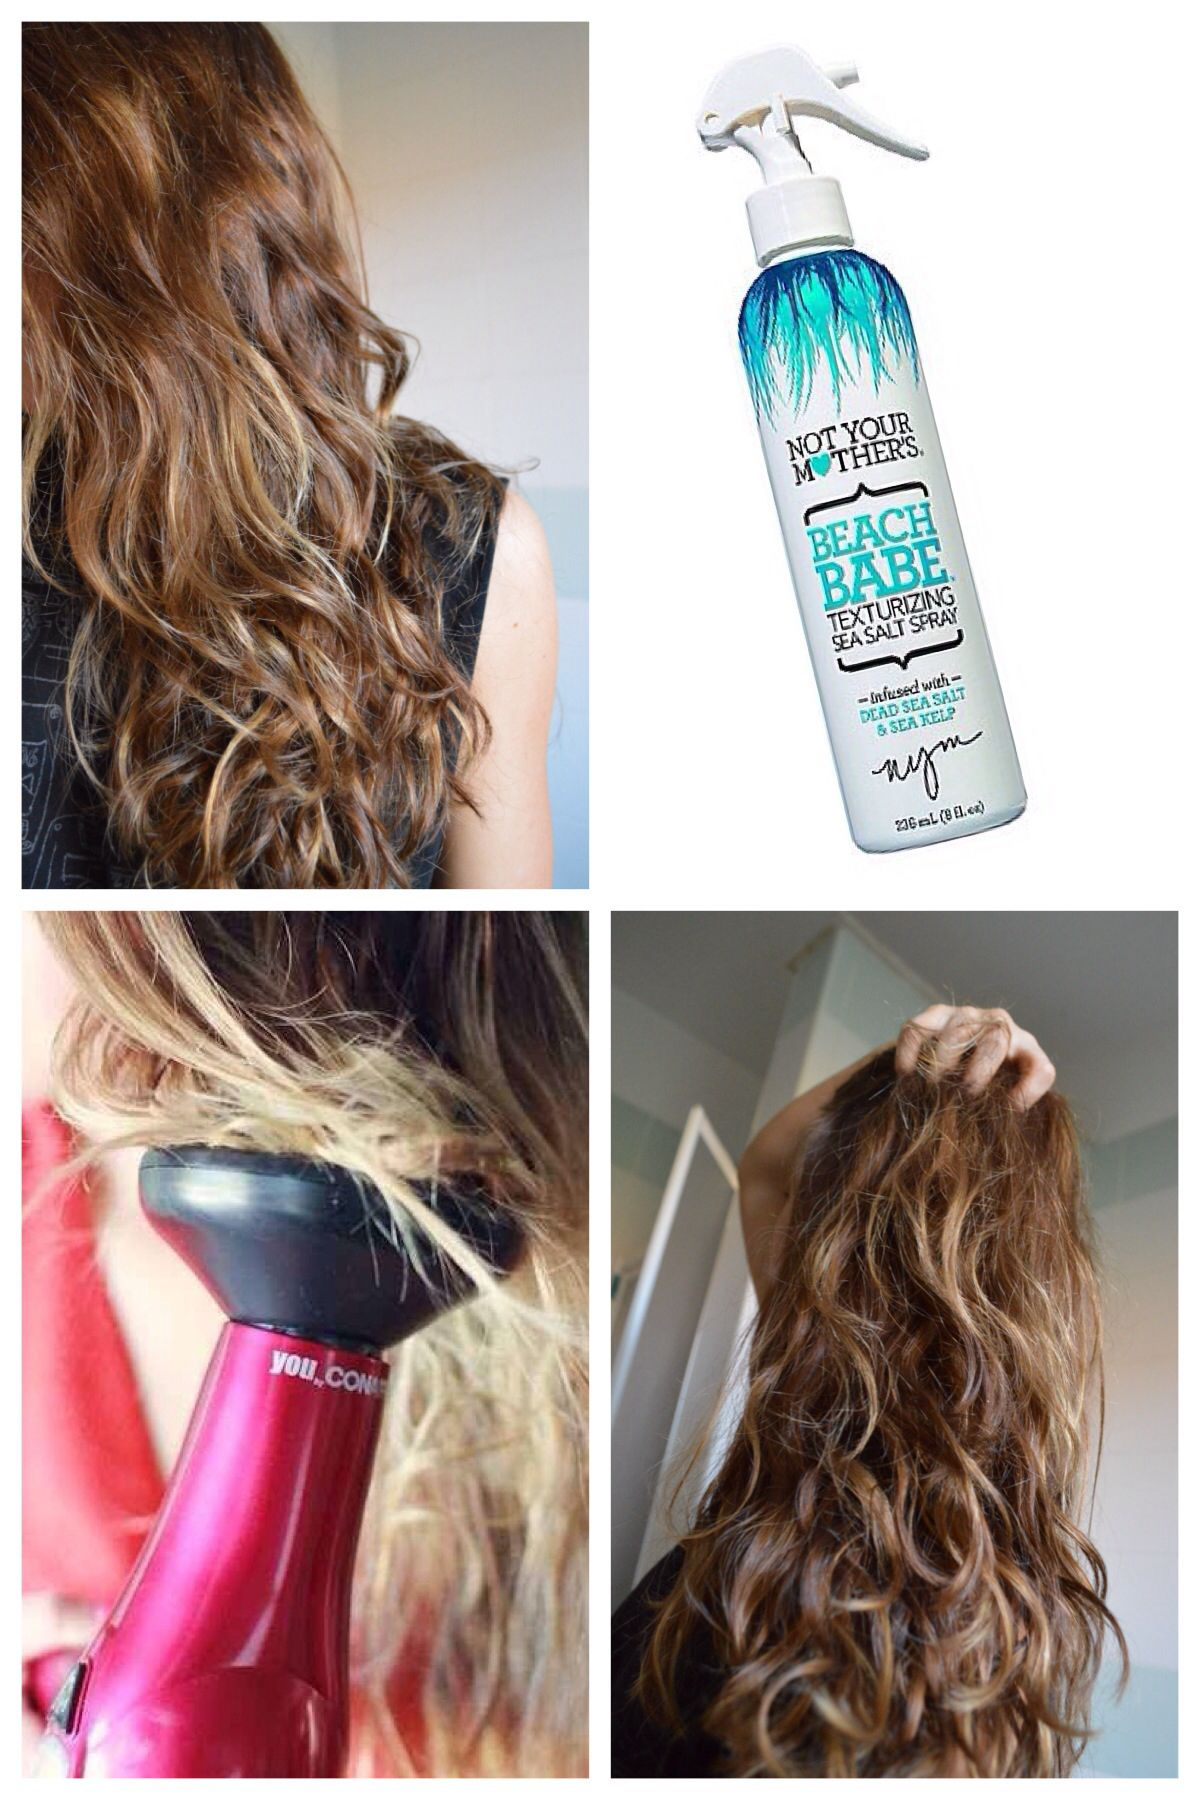 Easy beach waves apply not your mothers beach babe sea